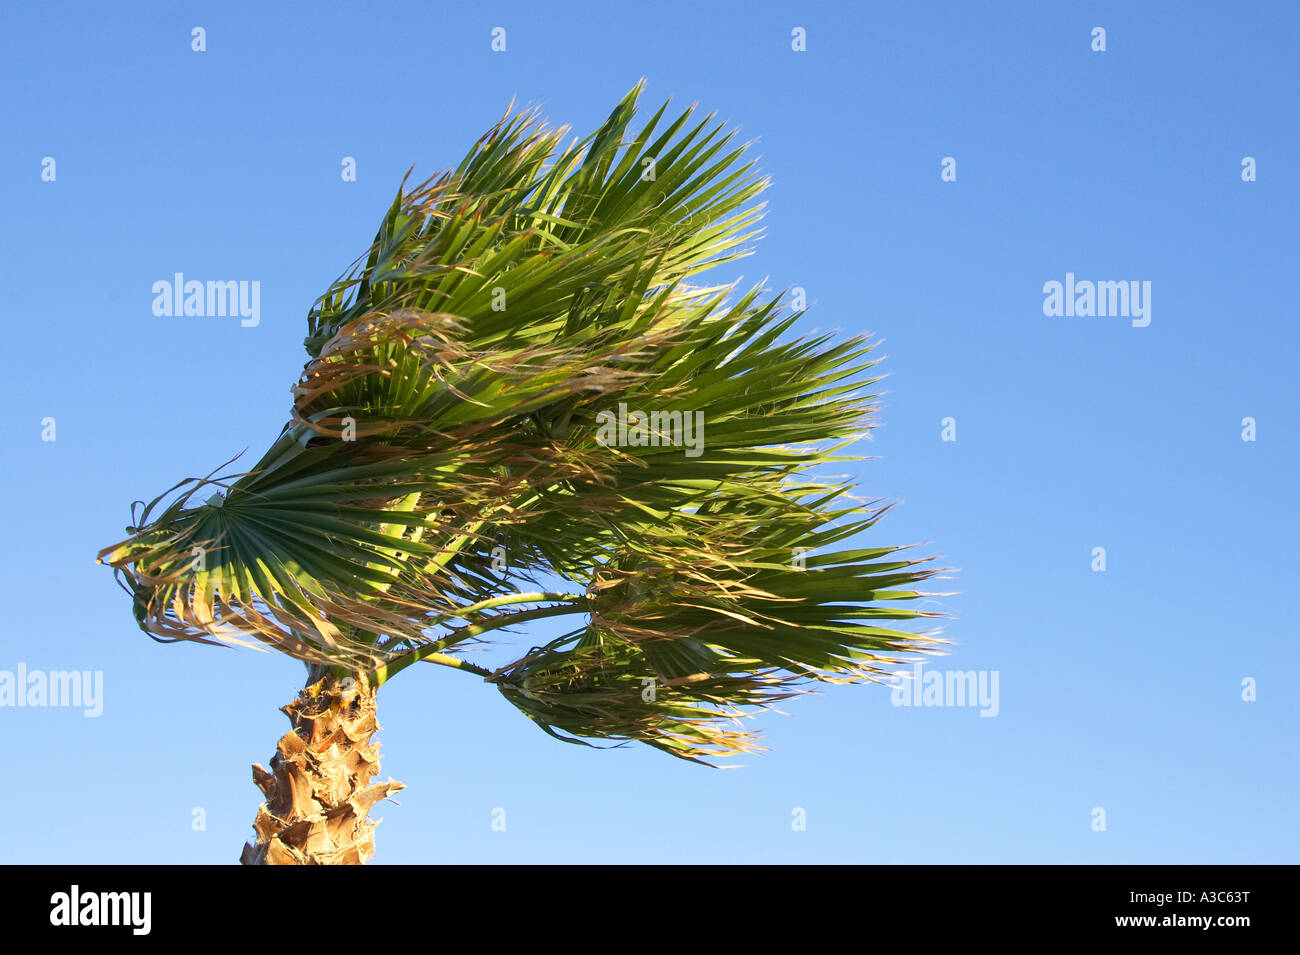 Windy Canary Islands